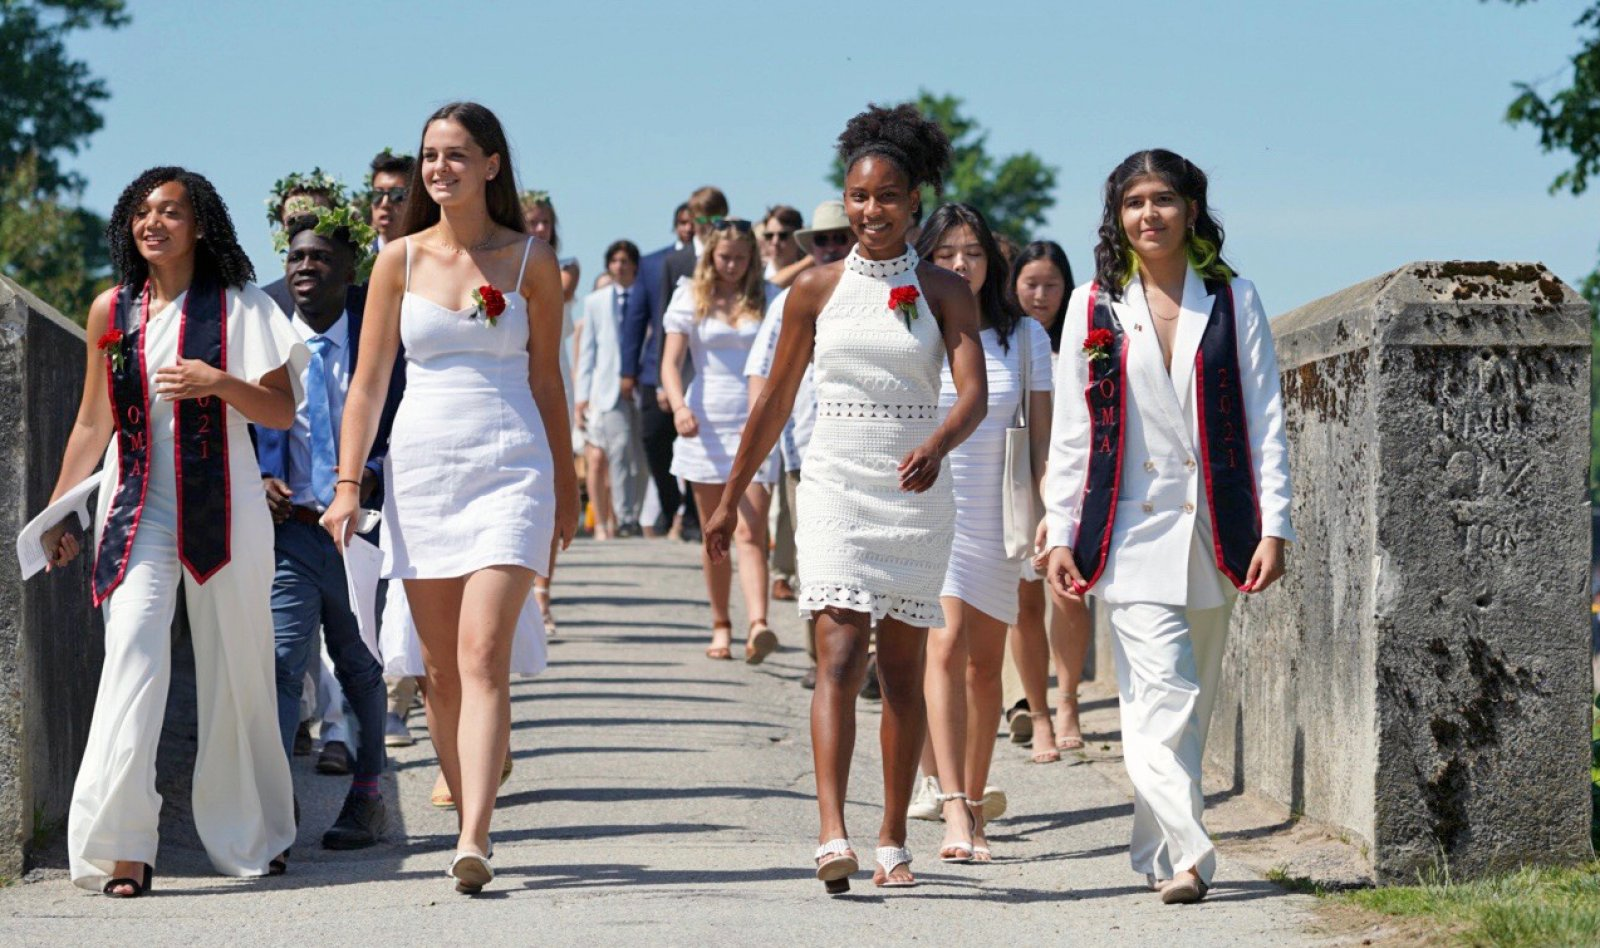 Marshals escort students to their seat at Exeter graduation